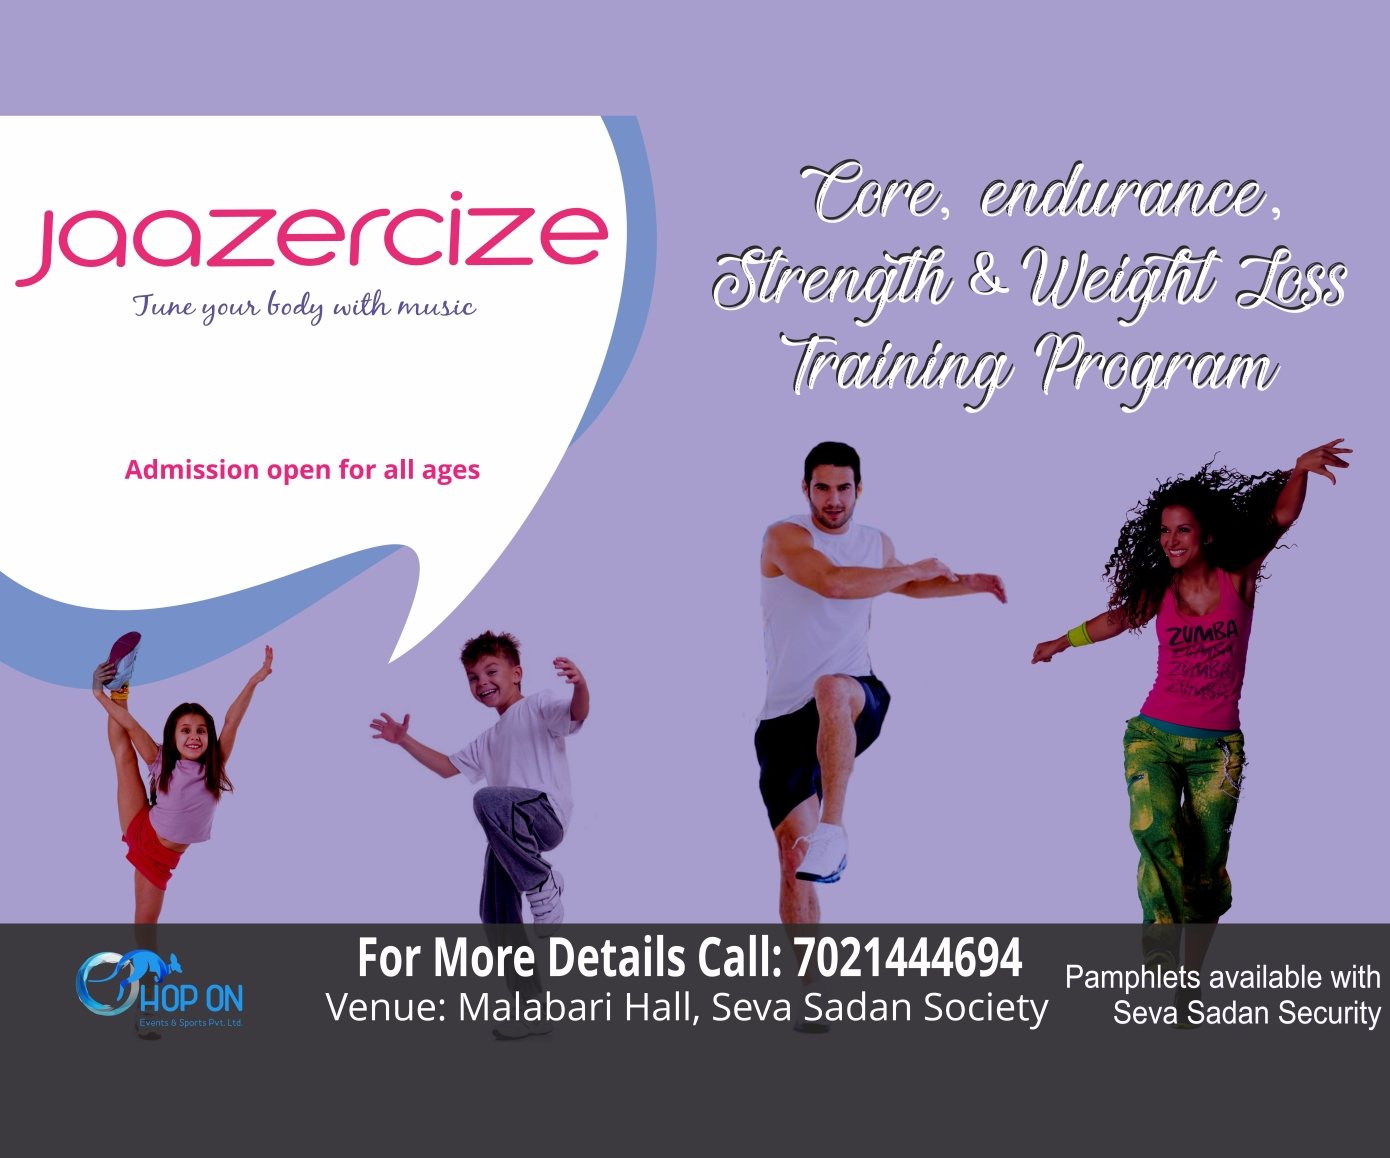 Optimized-Jaazercise Banner 01 Final c2cx4 (1)